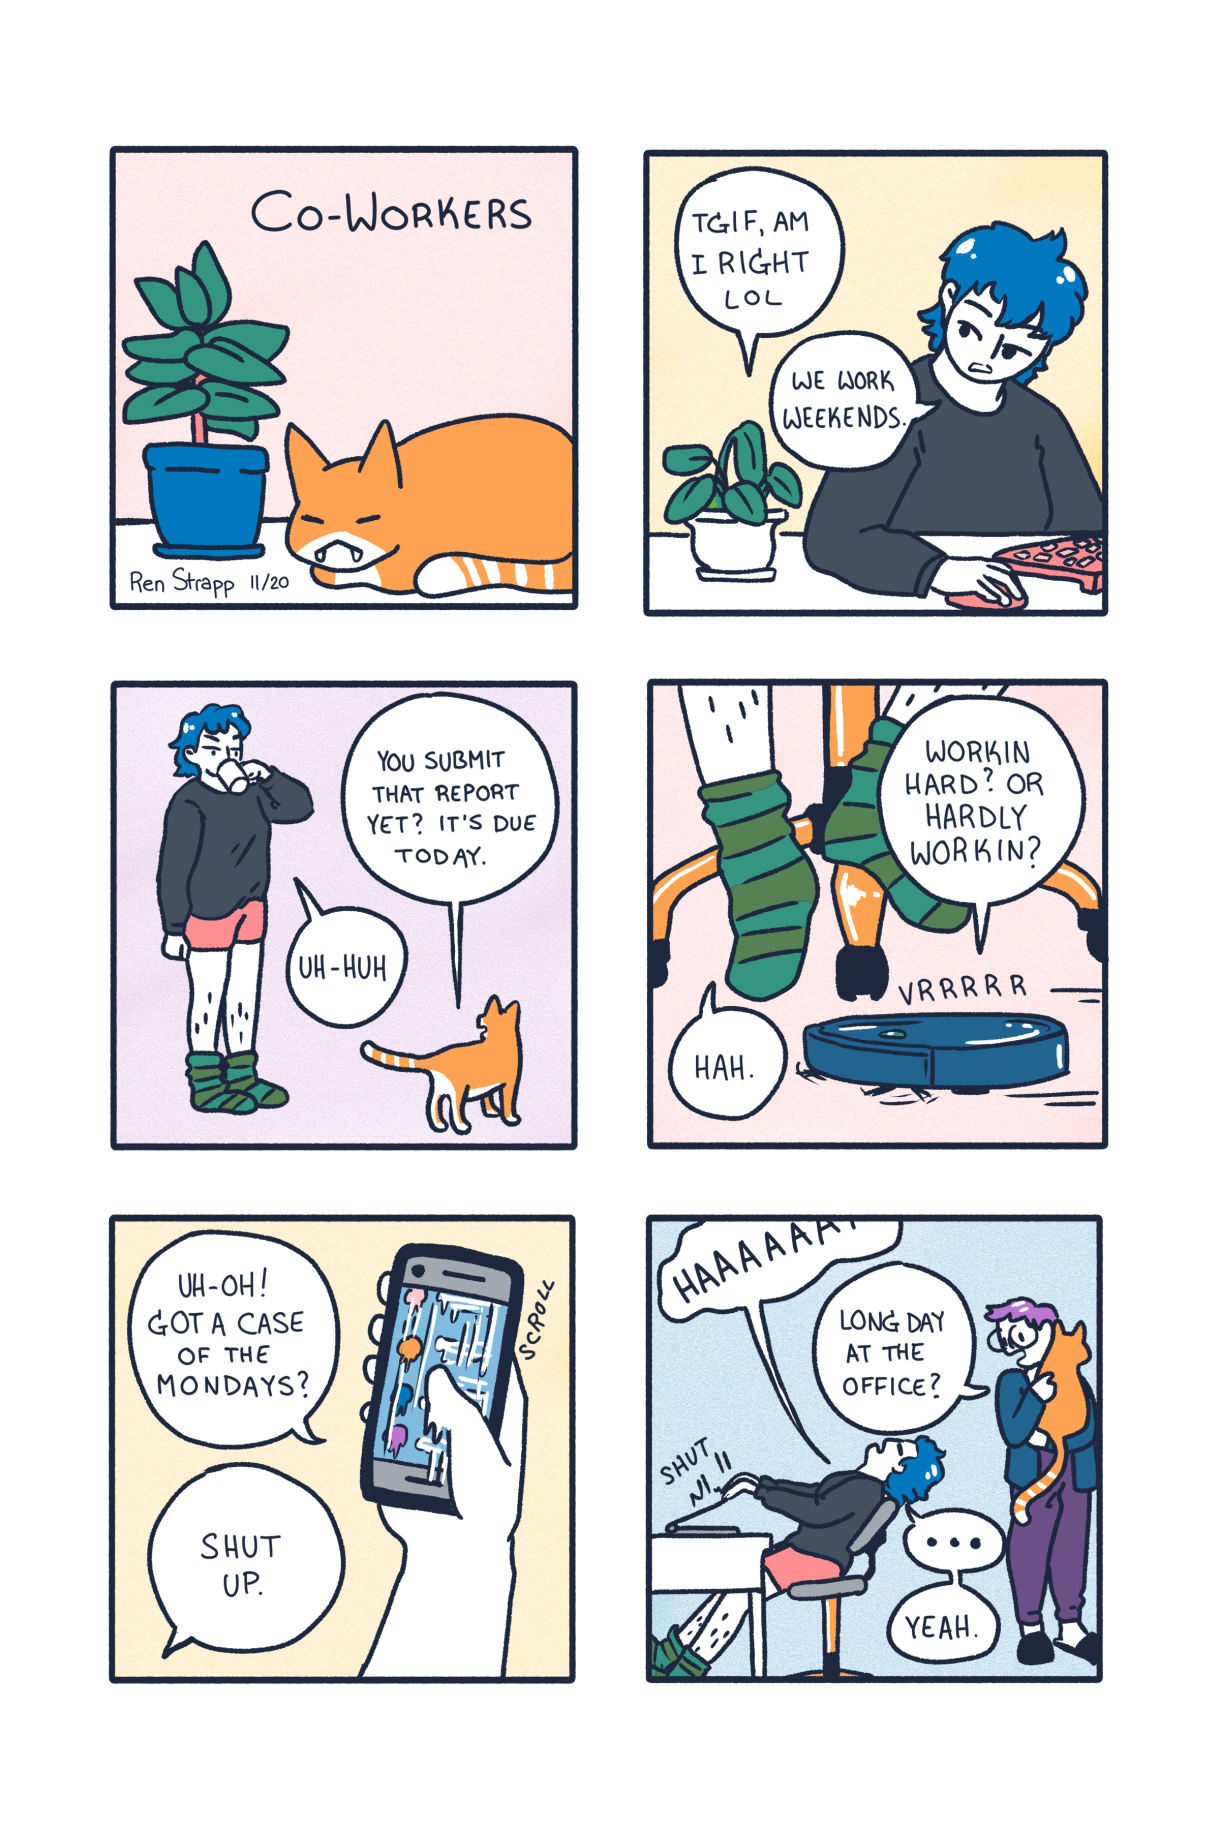 "A six panel comic. In it a blue haired queer works from home and talks to their co-worker — by which of course we mean, their cat — about the comings and goings of the day. The cat asks if they's submitted their report yet, or if they are ""workin hard or hardly working"" until finally our blue haired pal says: Shut Up! Then their partner, a purple haired queer with glasses, comes in to pick up the cat. They ask, ""Long day at the office?"""